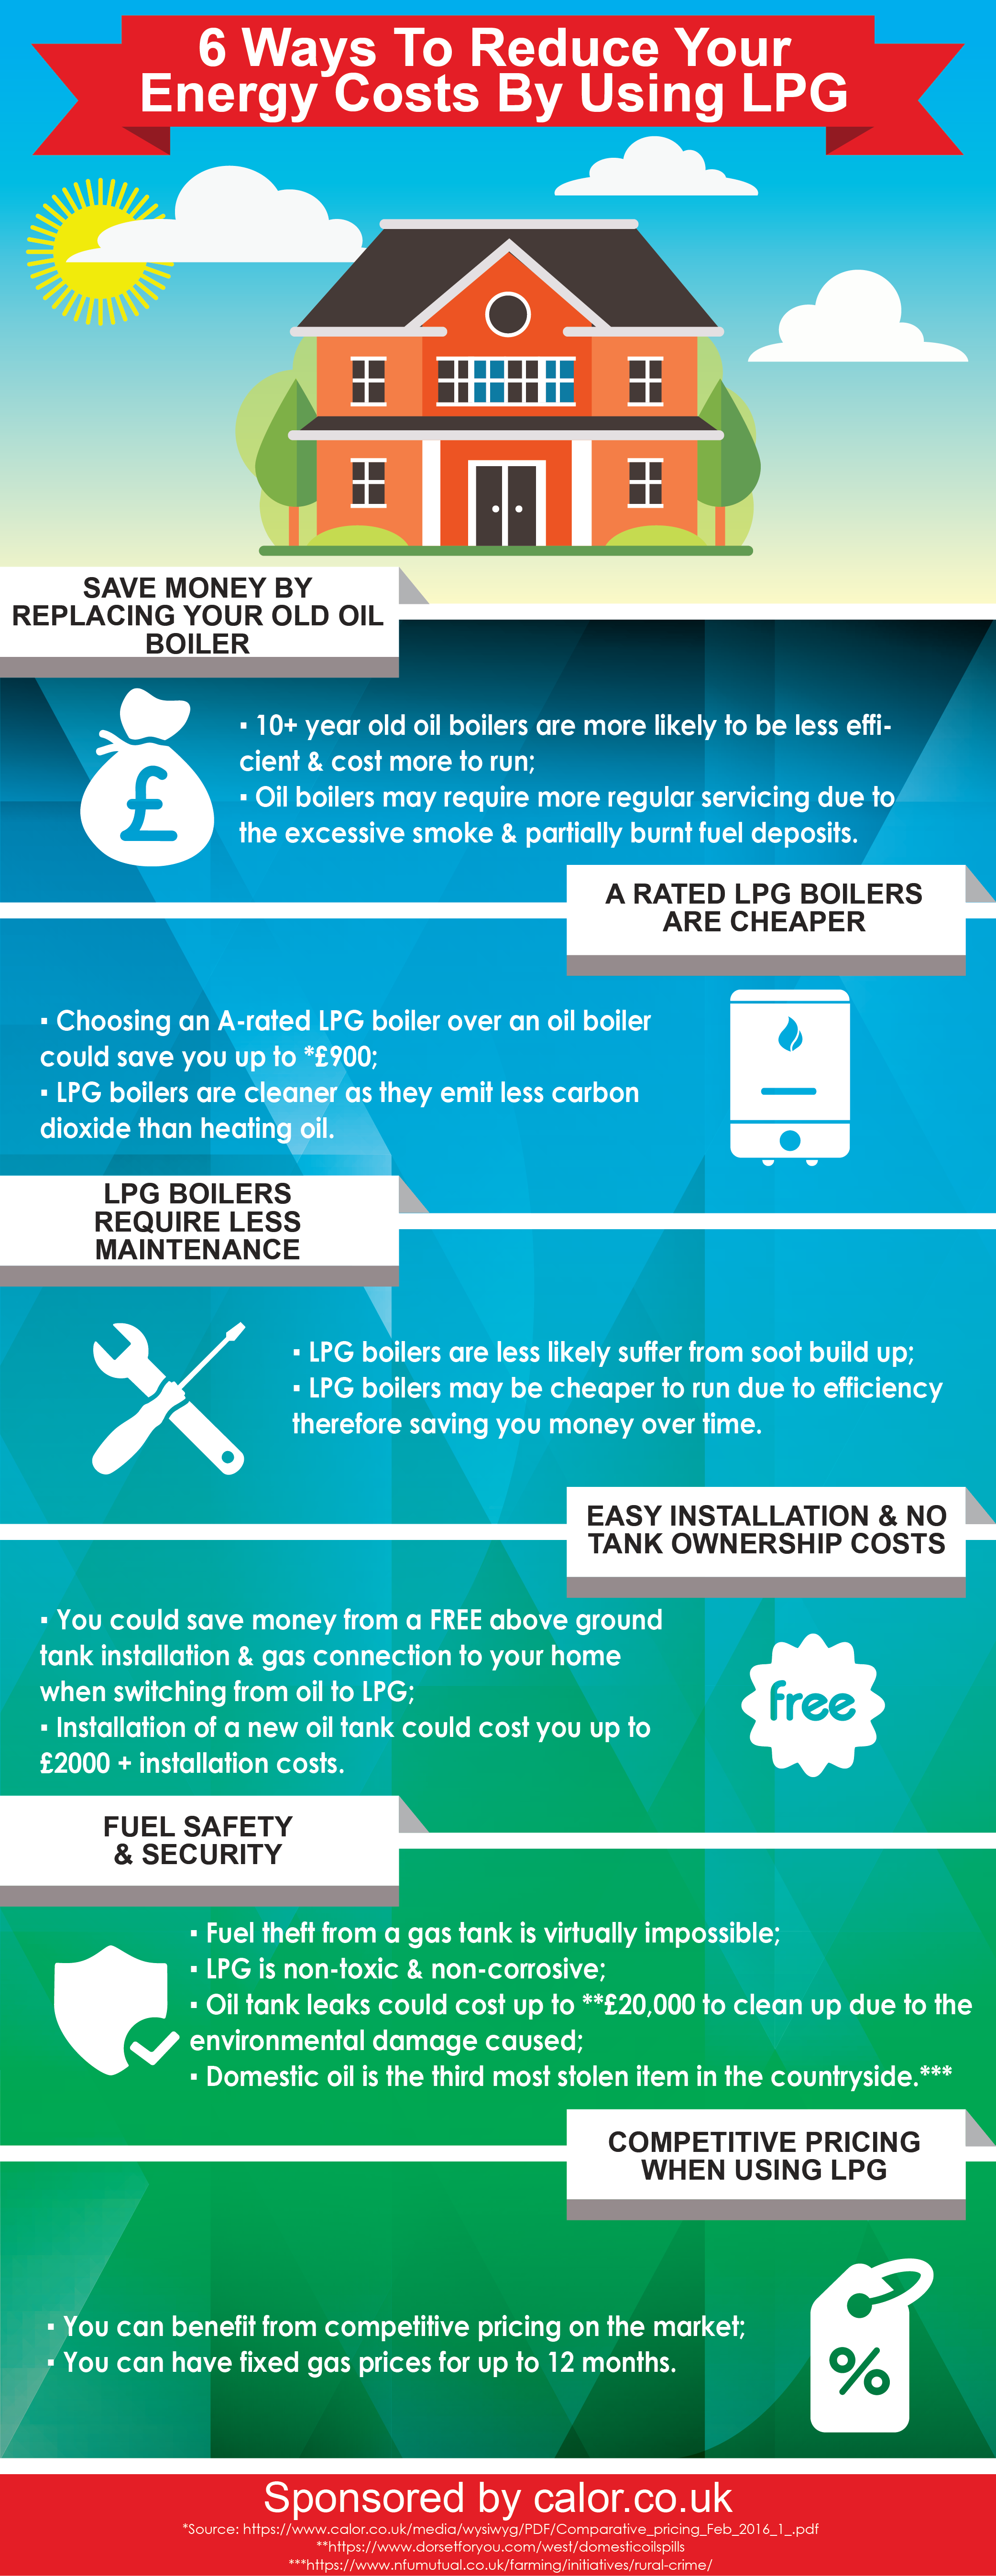 6 ways to reduce your energy costs by using LPG